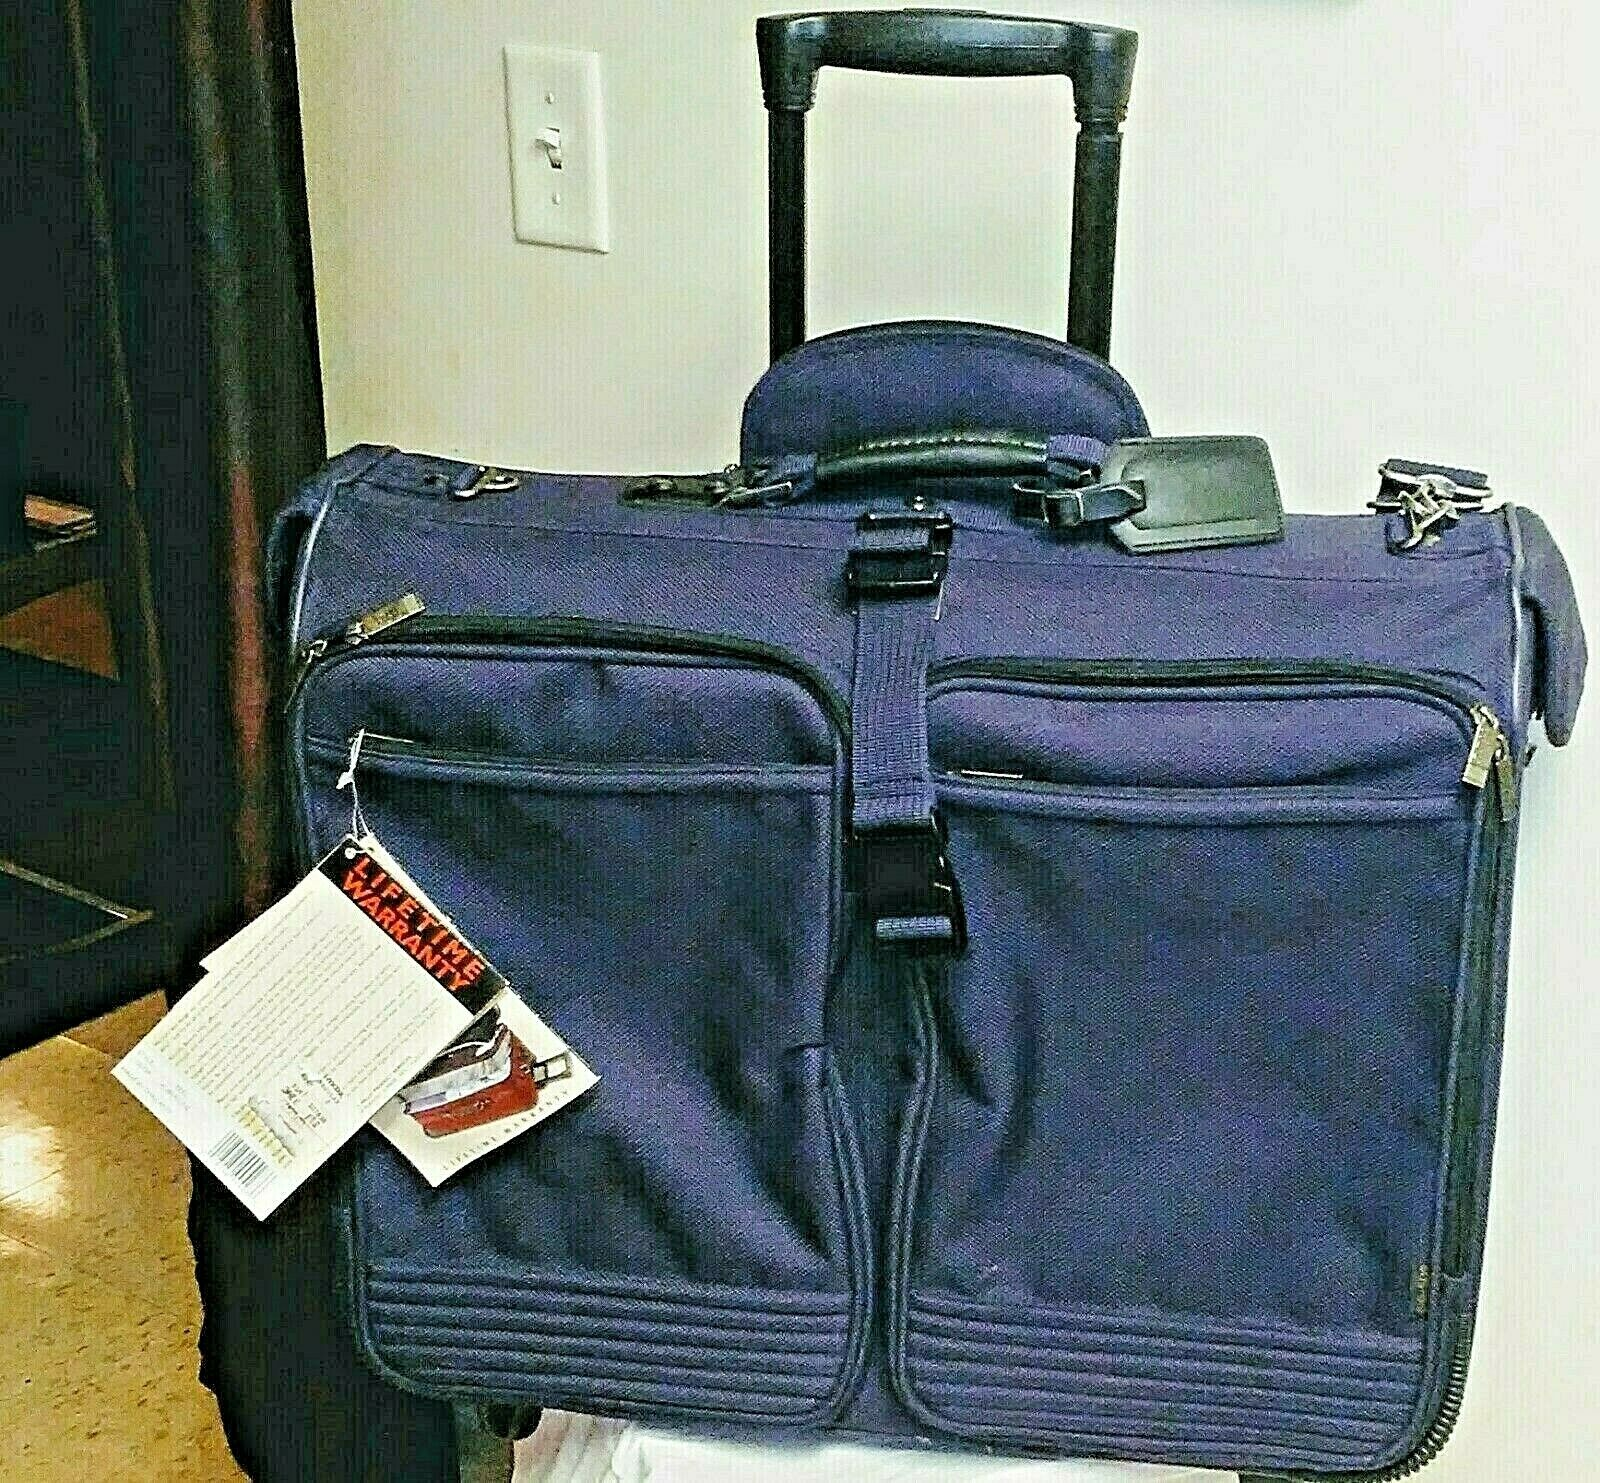 Ricardo Beverly Hills Rolling RHB Garment Bag Luggage EXCELLENT Style 9942 - $89.99